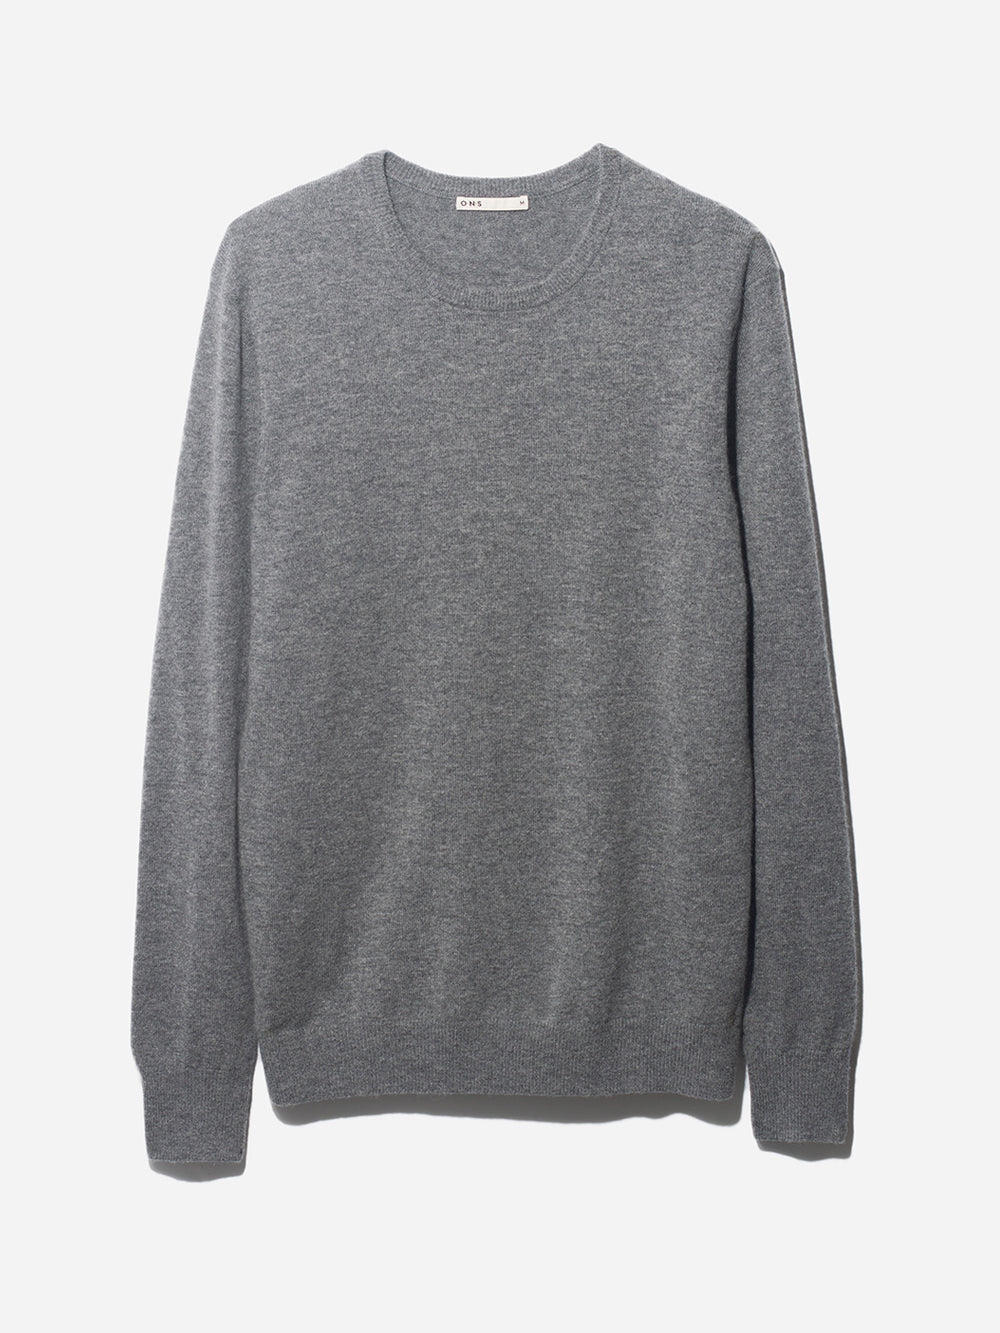 IVY SWEATER ONS CLOTHING GREY